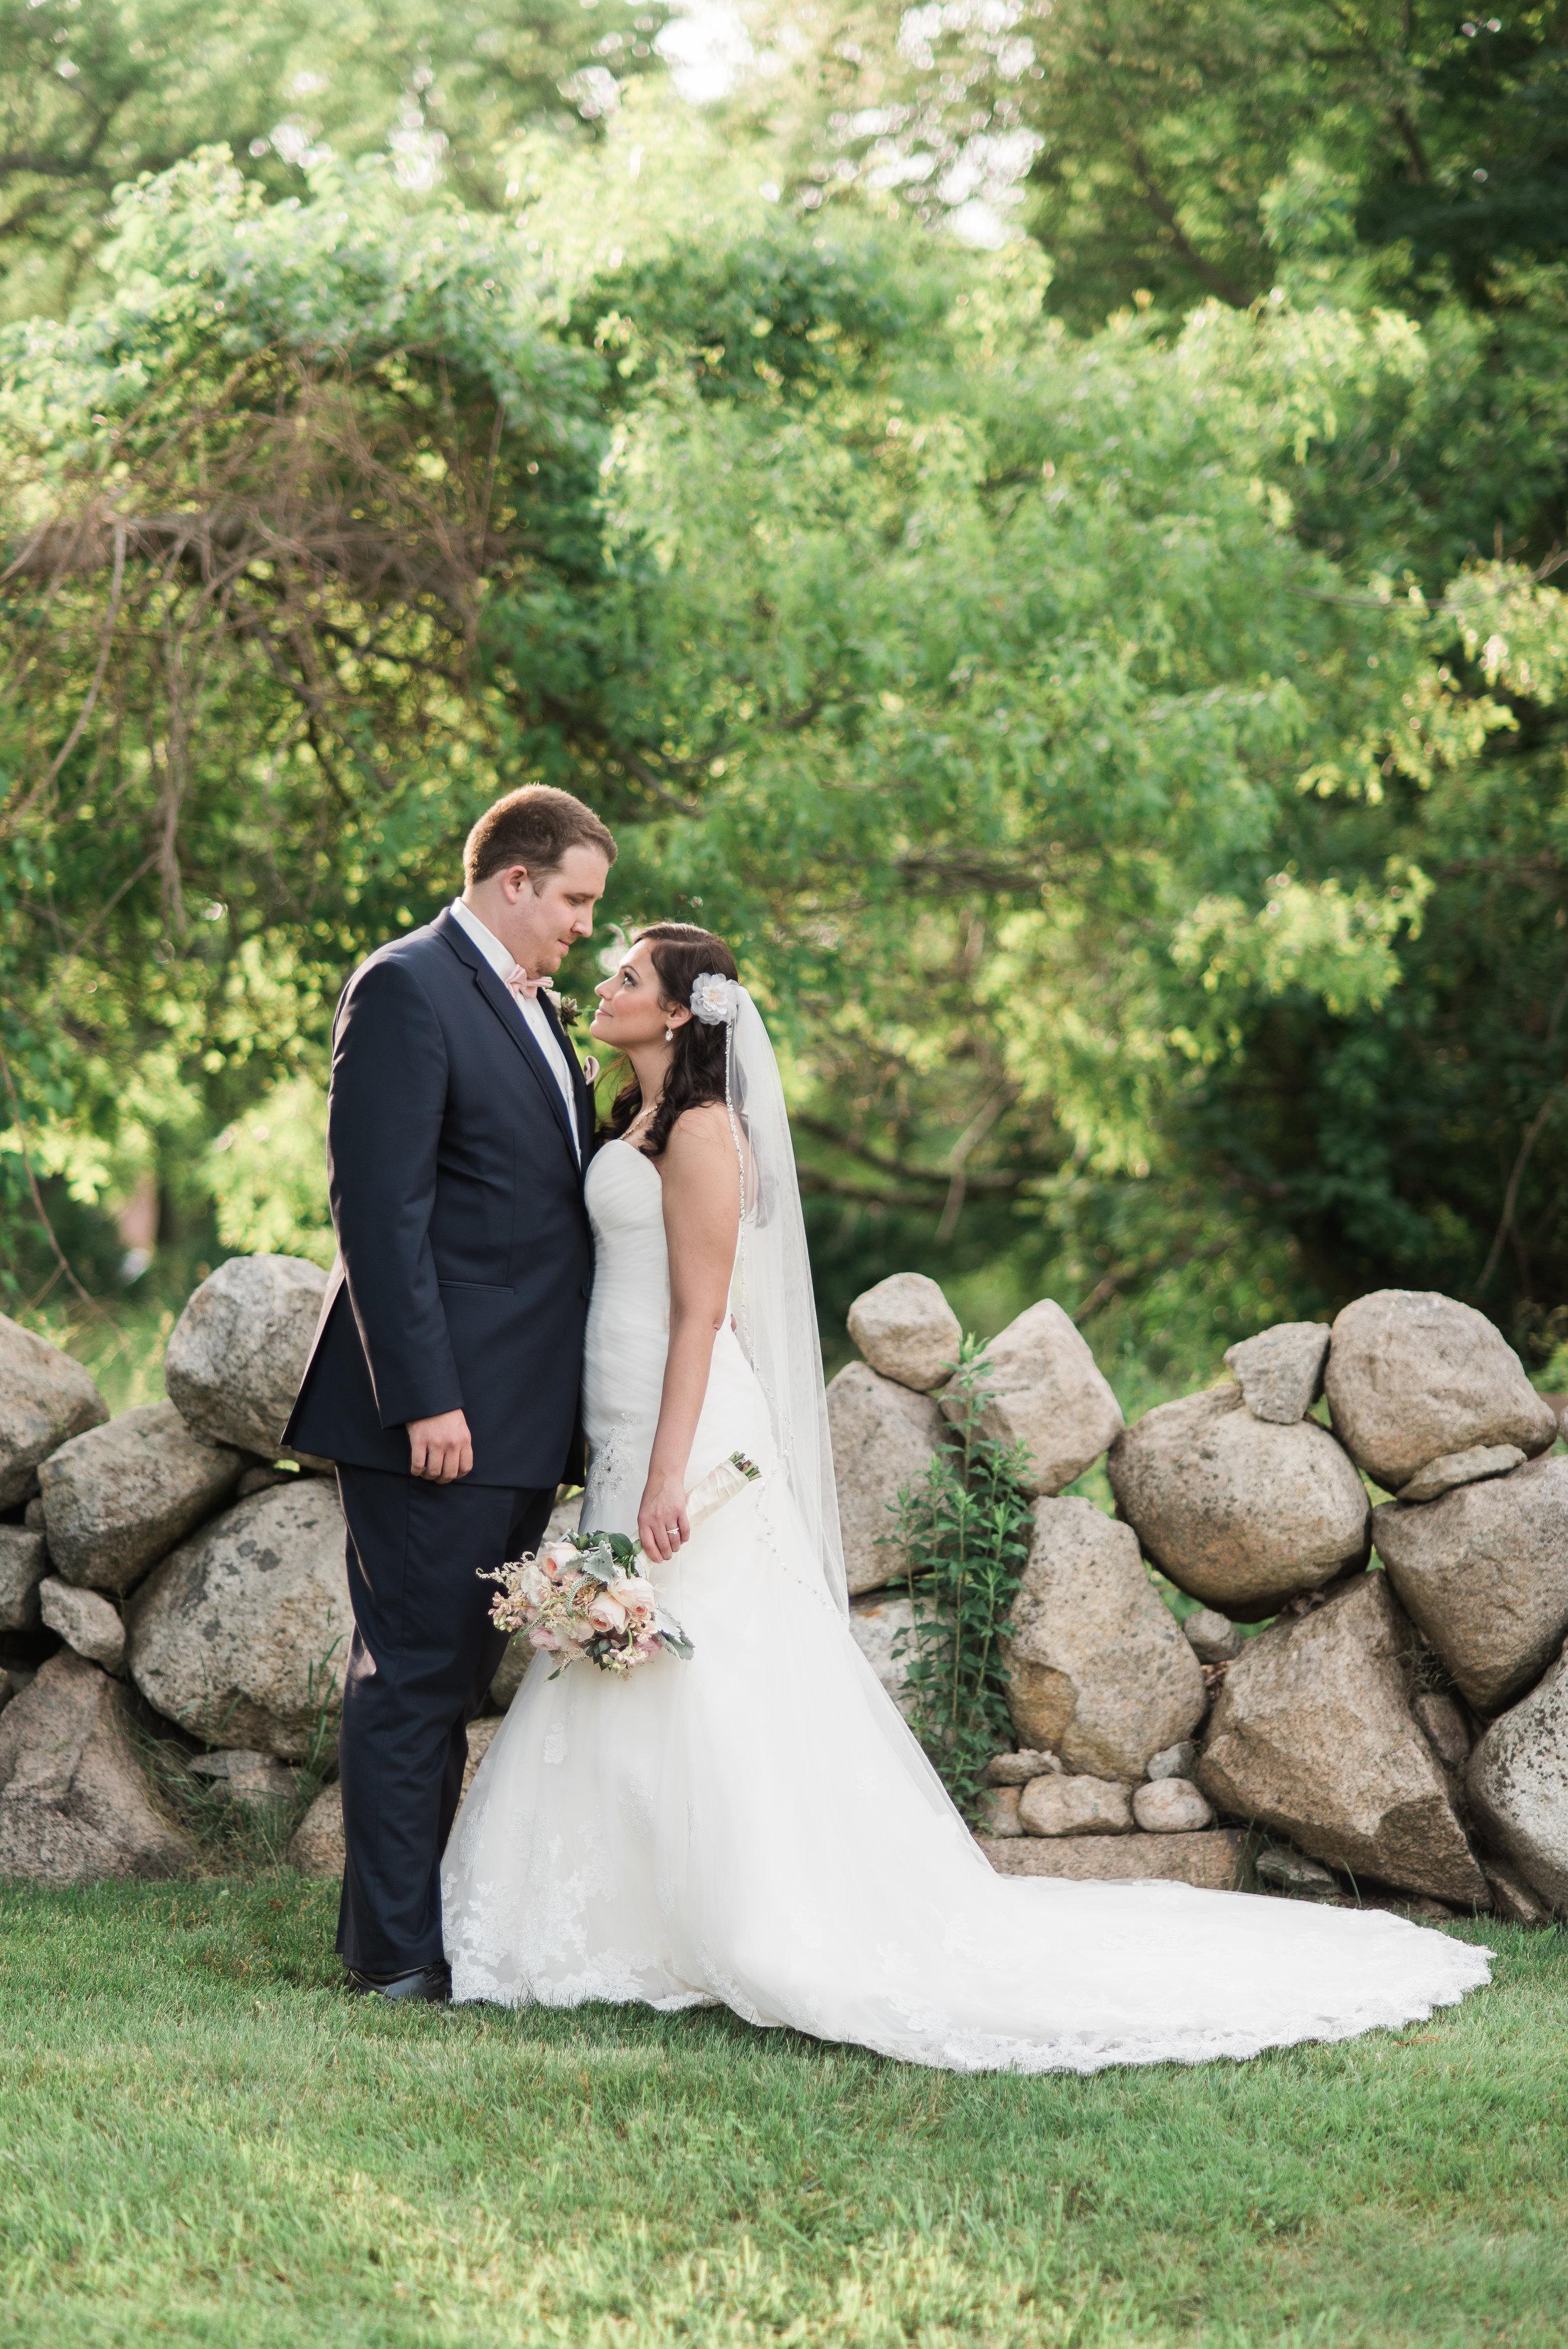 MELINDA + ALAN - Simply AMAZING! We are not over exaggerating!!! Shanna and Mike are the BEST! We are so lucky and blessed to have been able to work with House of Lubold Photography. First of all, Mike and Shanna are couple goals! They are so cute together and their love for each other makes you so happy. Mike and Shanna were so easy to work with, they made us feel extremely comfortable and excited about our big day. Shanna is hilarious and so sweet, she did so much for me on my wedding day, way more than what she ever had to! We would like to consider them more as friends instead of vendors now. The teaser photos we received has had us SO EXCITED to get our photos! We give House of Lubold our highest recommendation for any type of occasion, especially weddings!! House of Lubold Photography will be our go-to in future occasions. Thank you so much for everything Shanna and Mike!!!